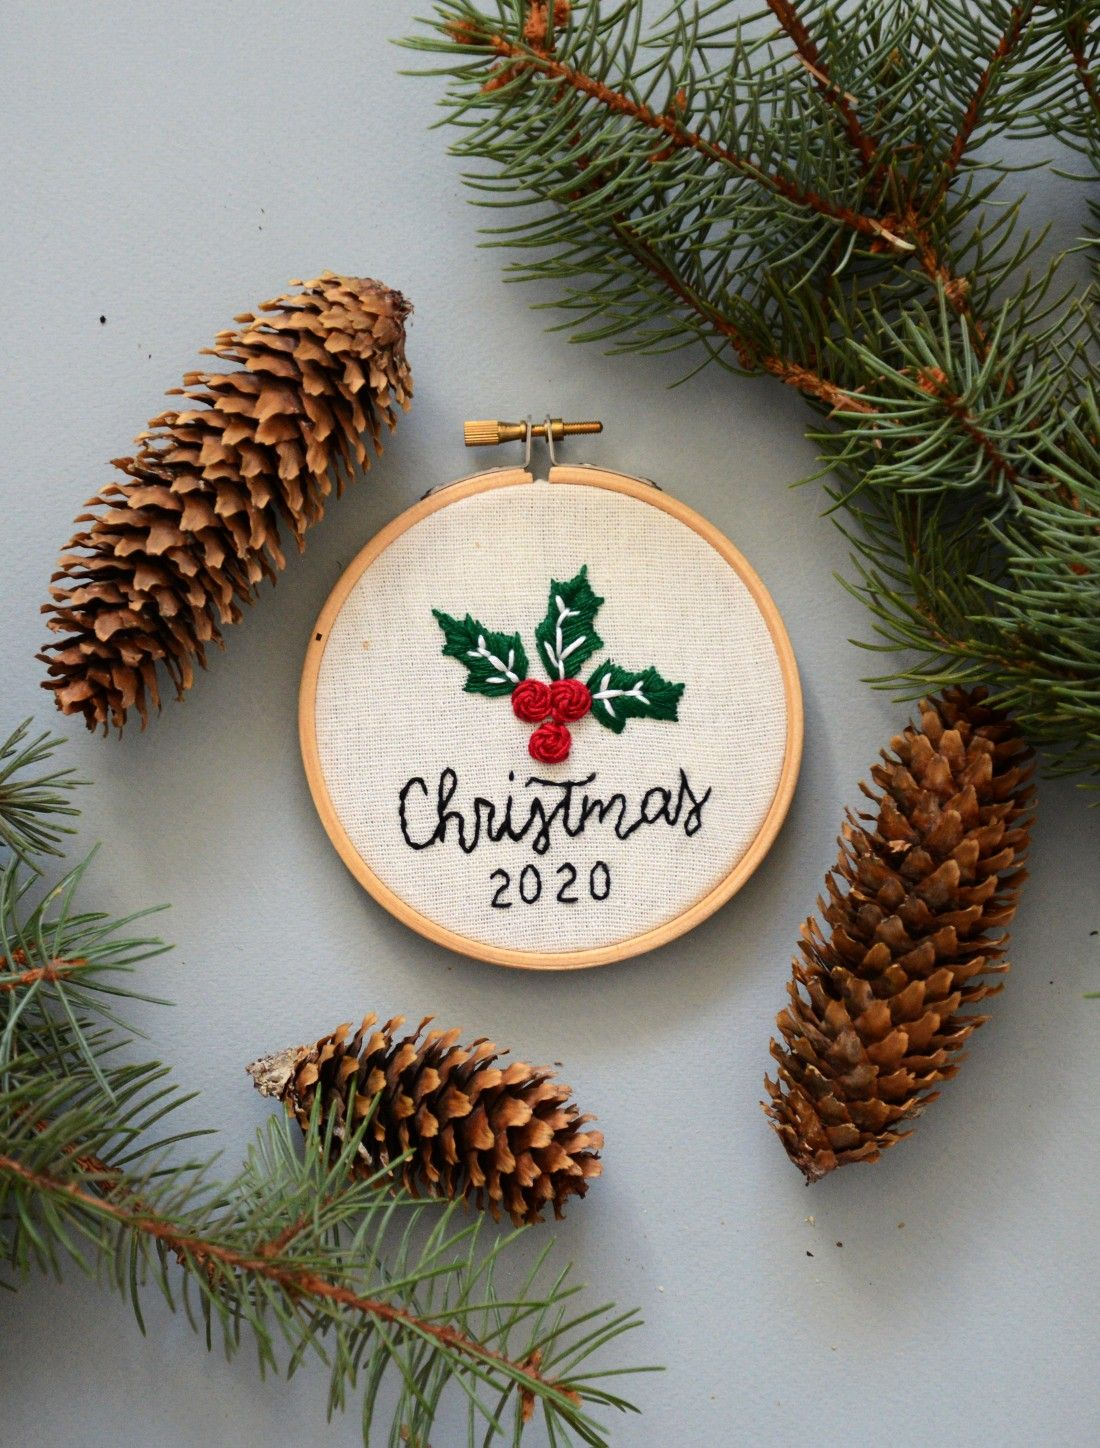 This Christmas 2020 Hand Embroidery Hoop Art will be